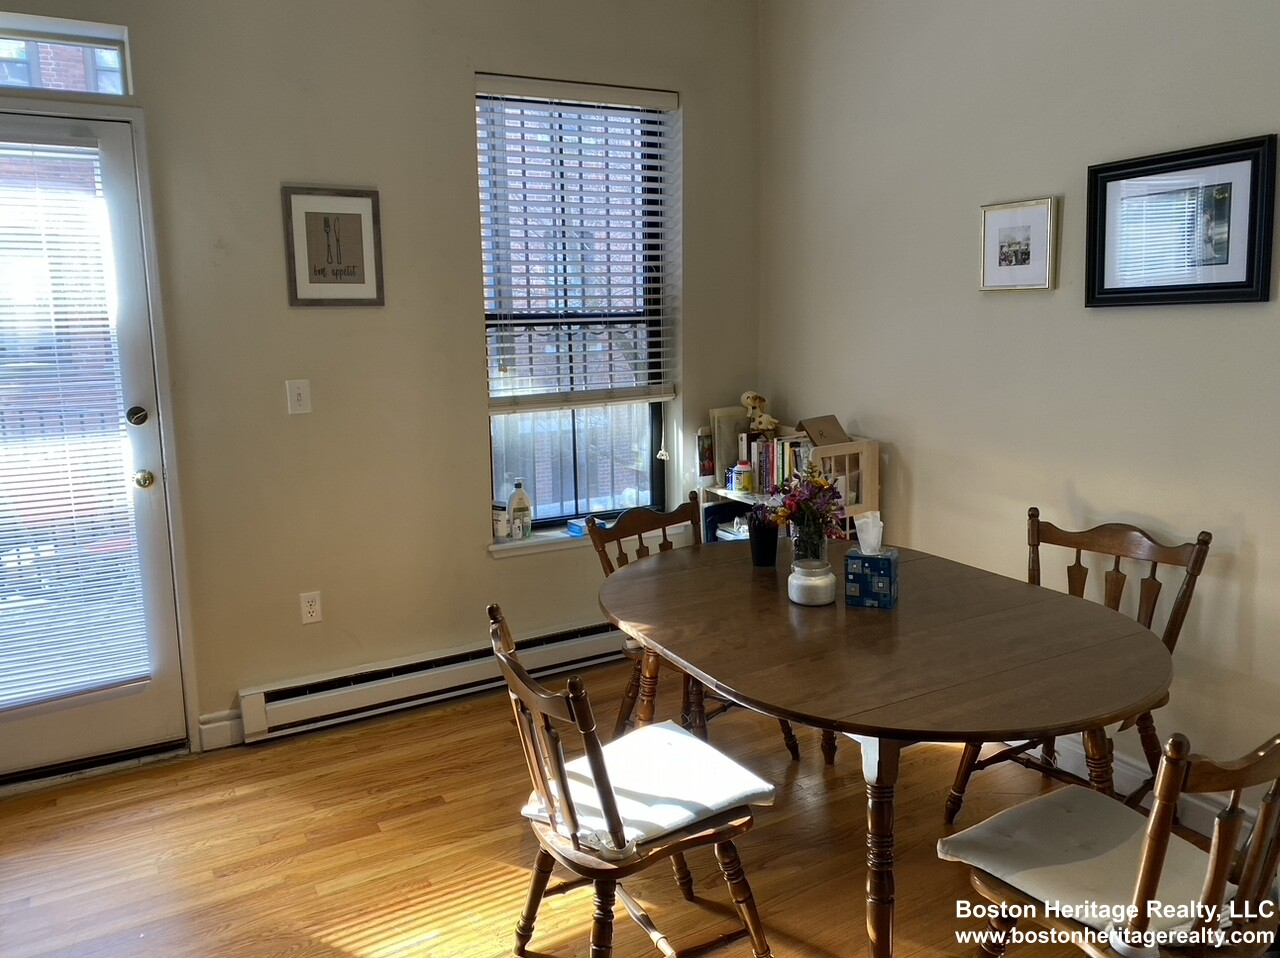 1 Bed, 1 Bath apartment in Boston, Fenway for $2,500